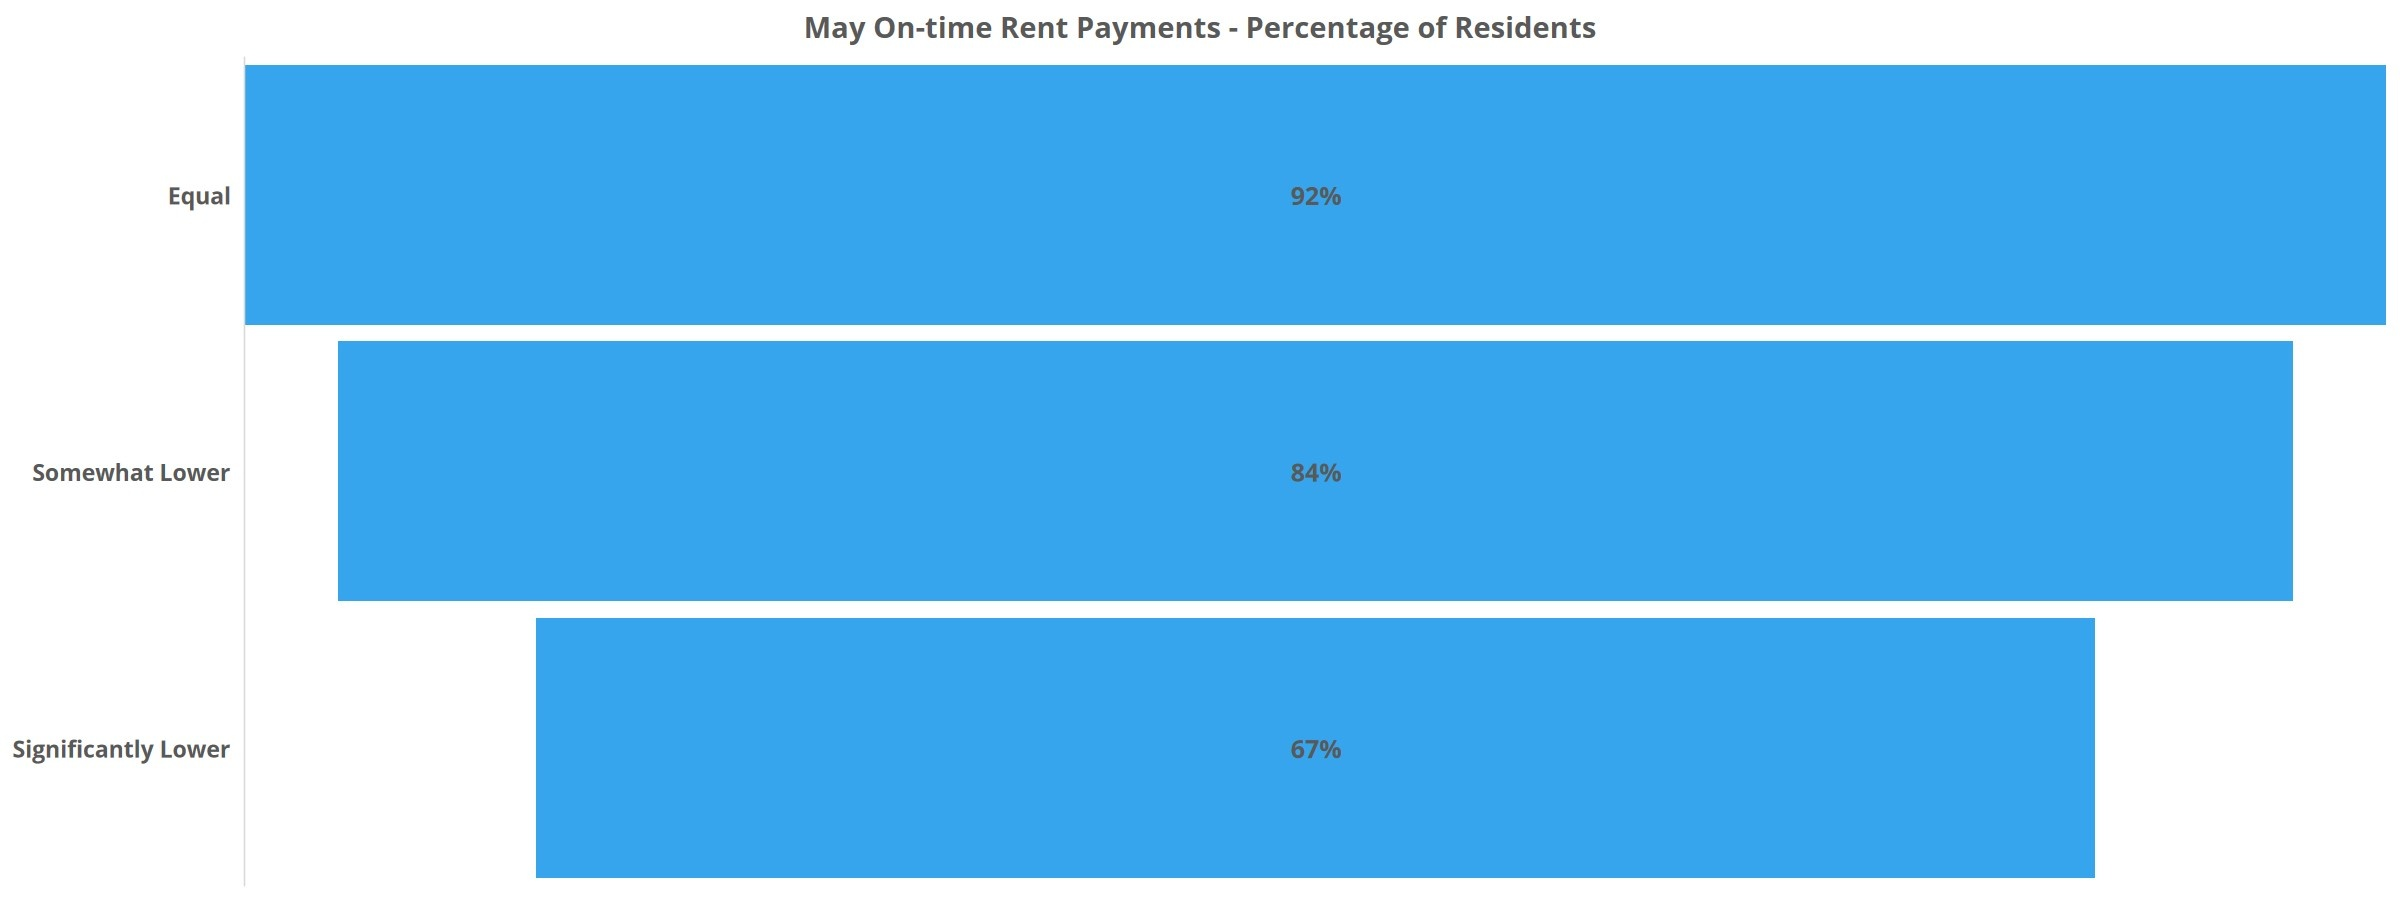 May On-time Rent Payments - Percentage of Residents